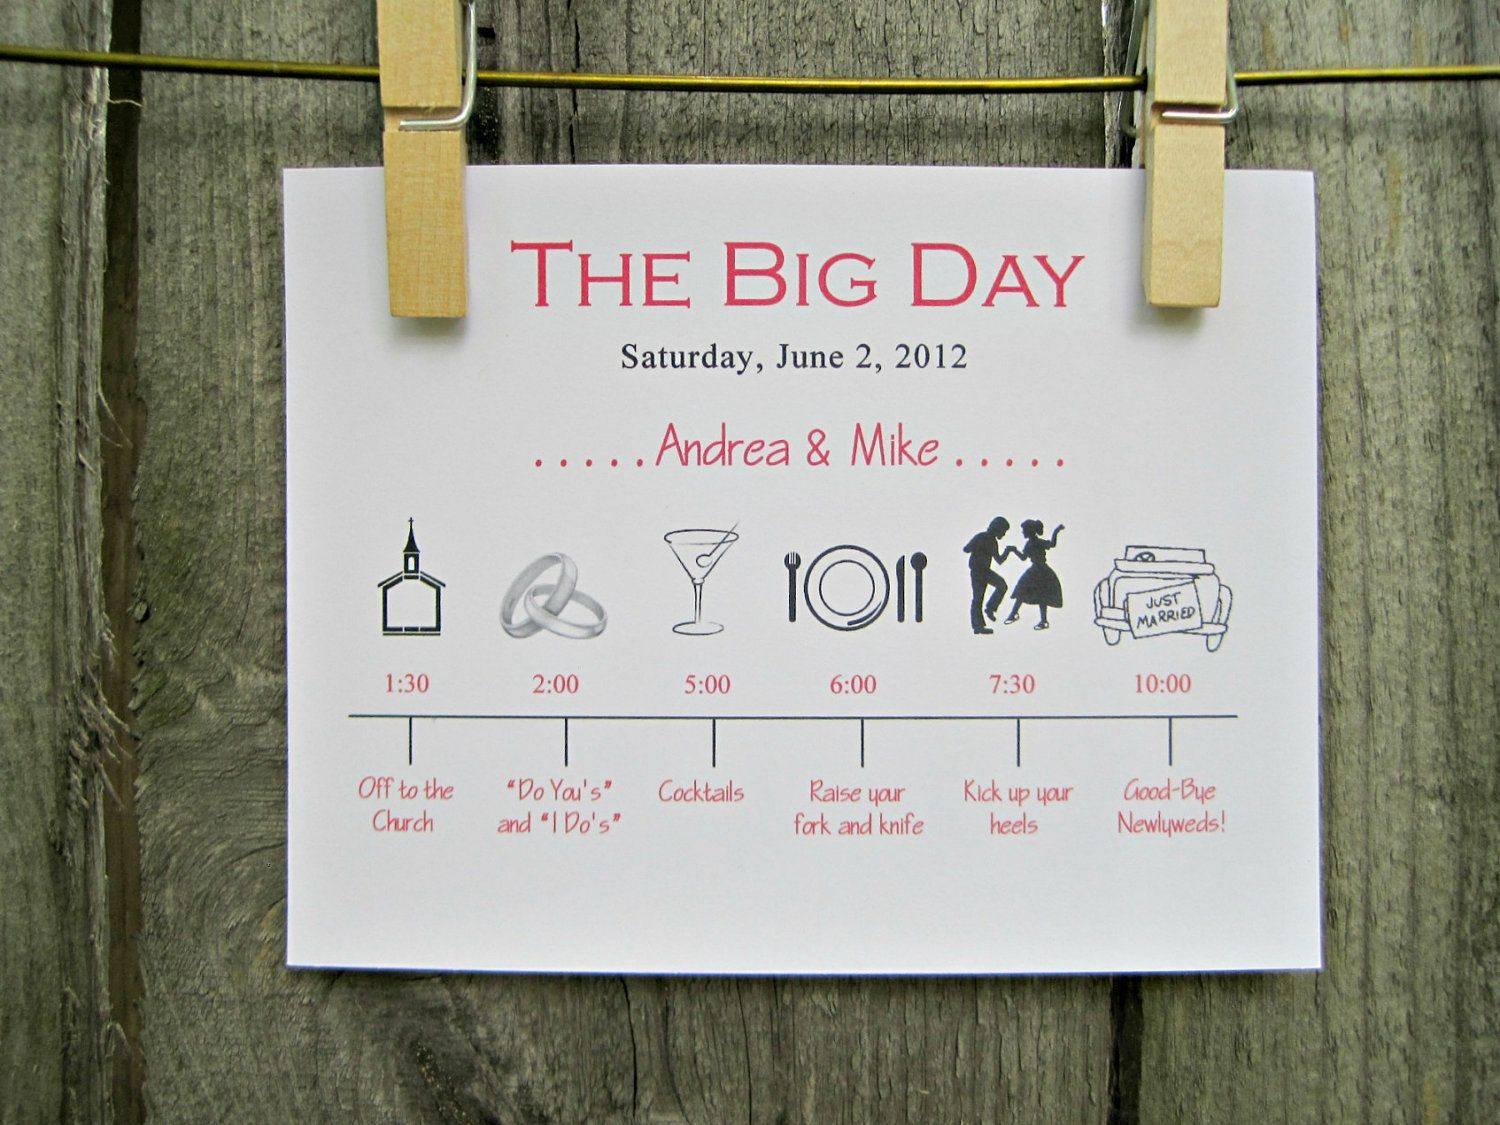 wedding day timeline schedule of events invitation card | wedding, Wedding invitations